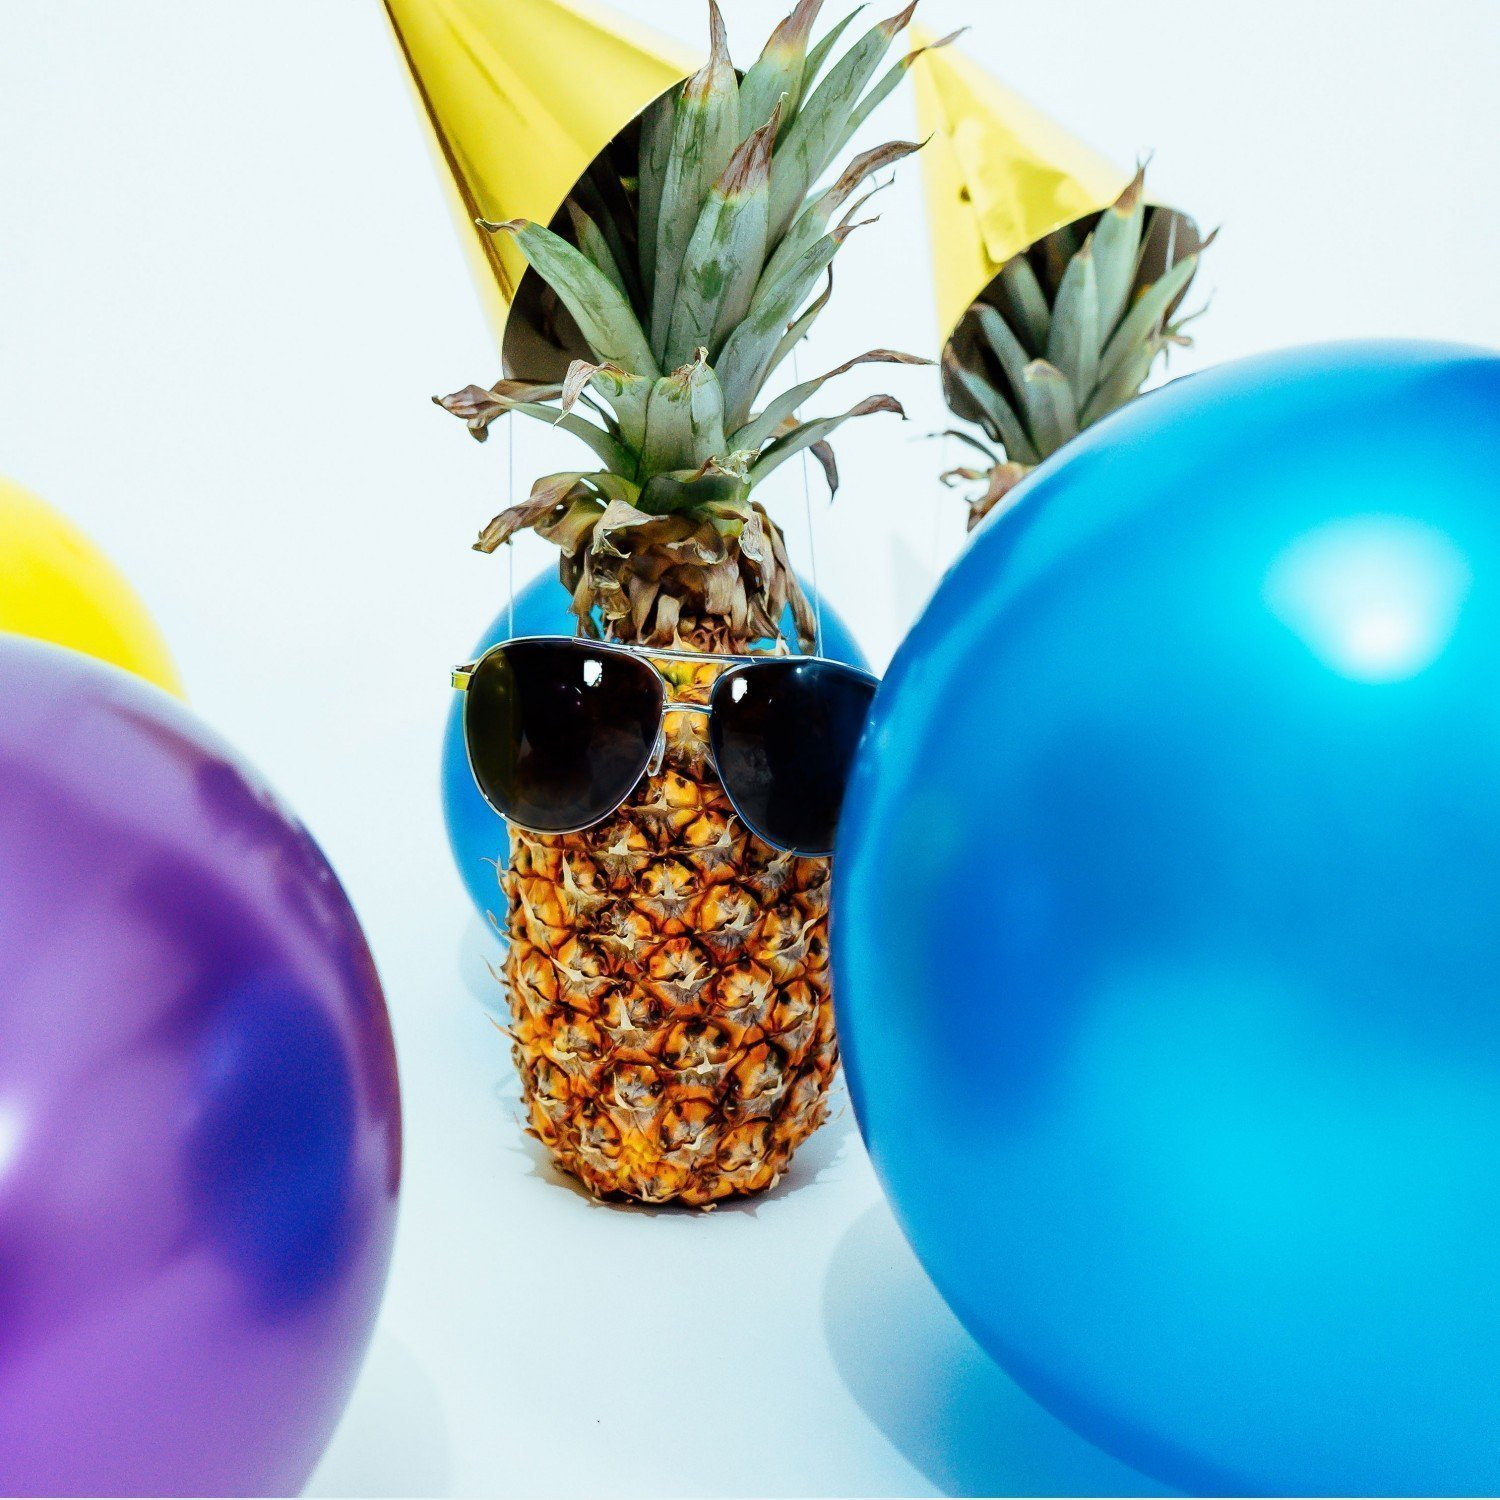 crowded lonely pineapple at a party